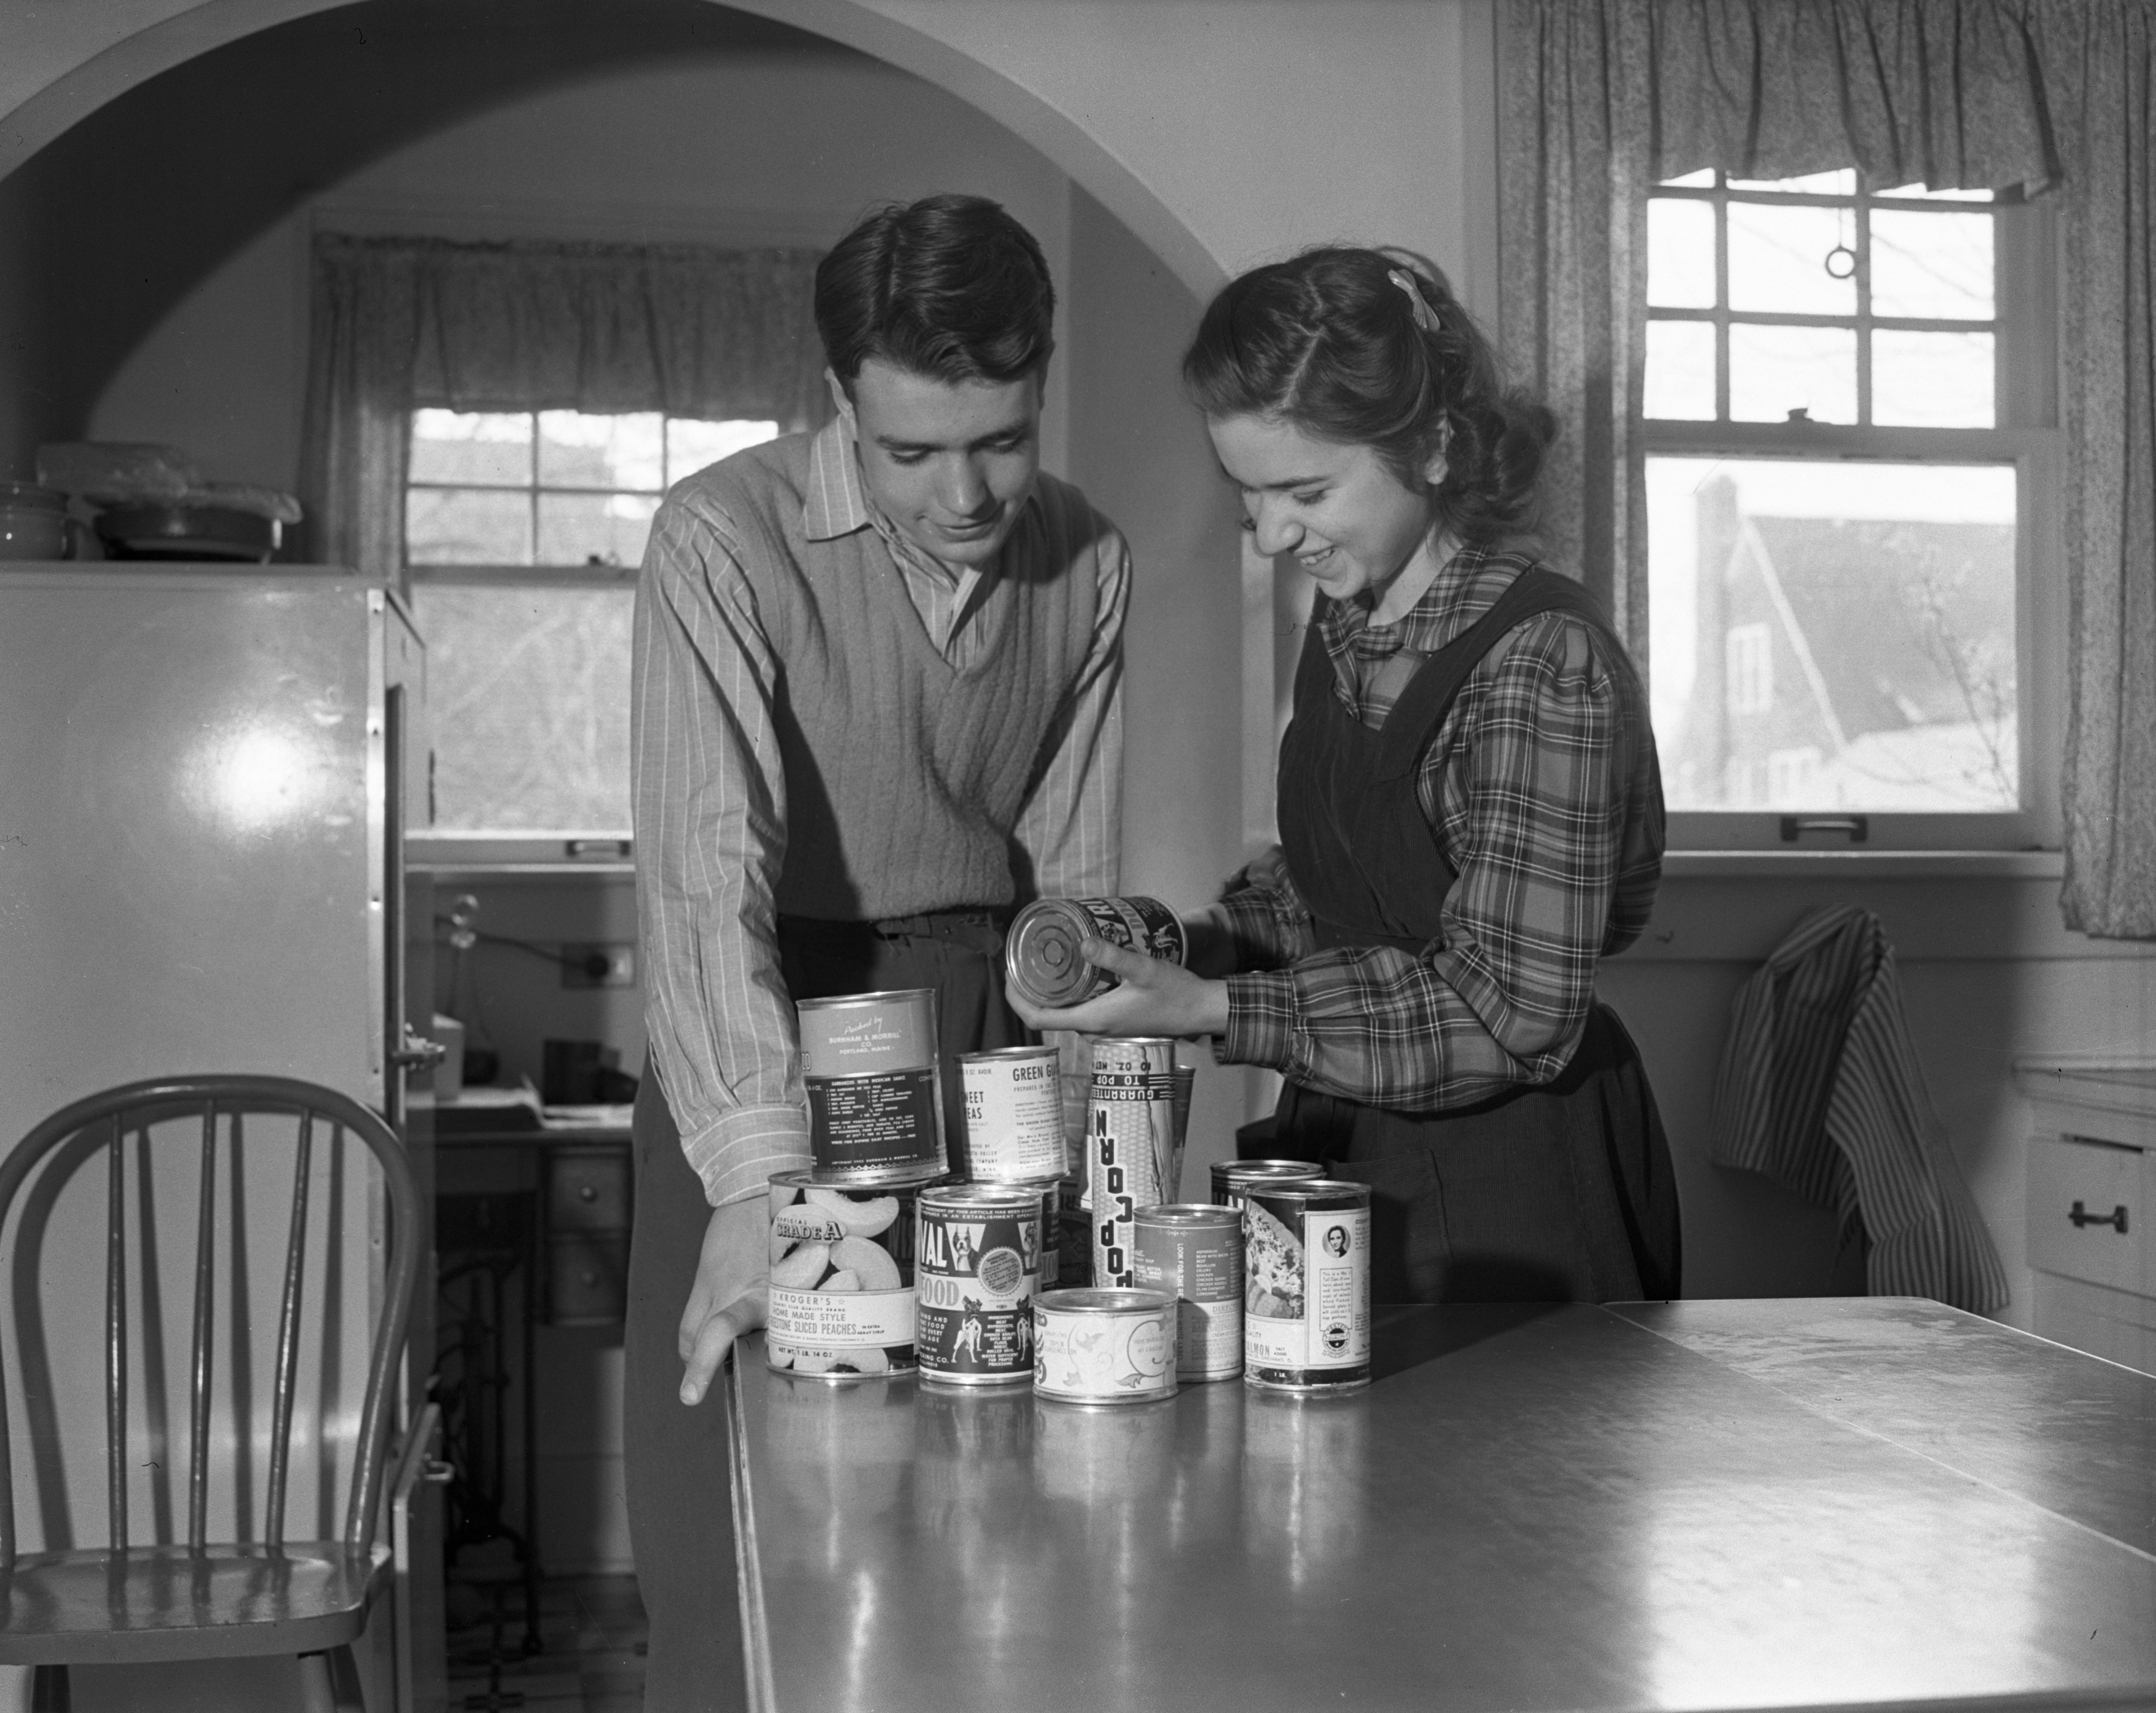 Bobby and Julia: Canned Goods, 1941 image